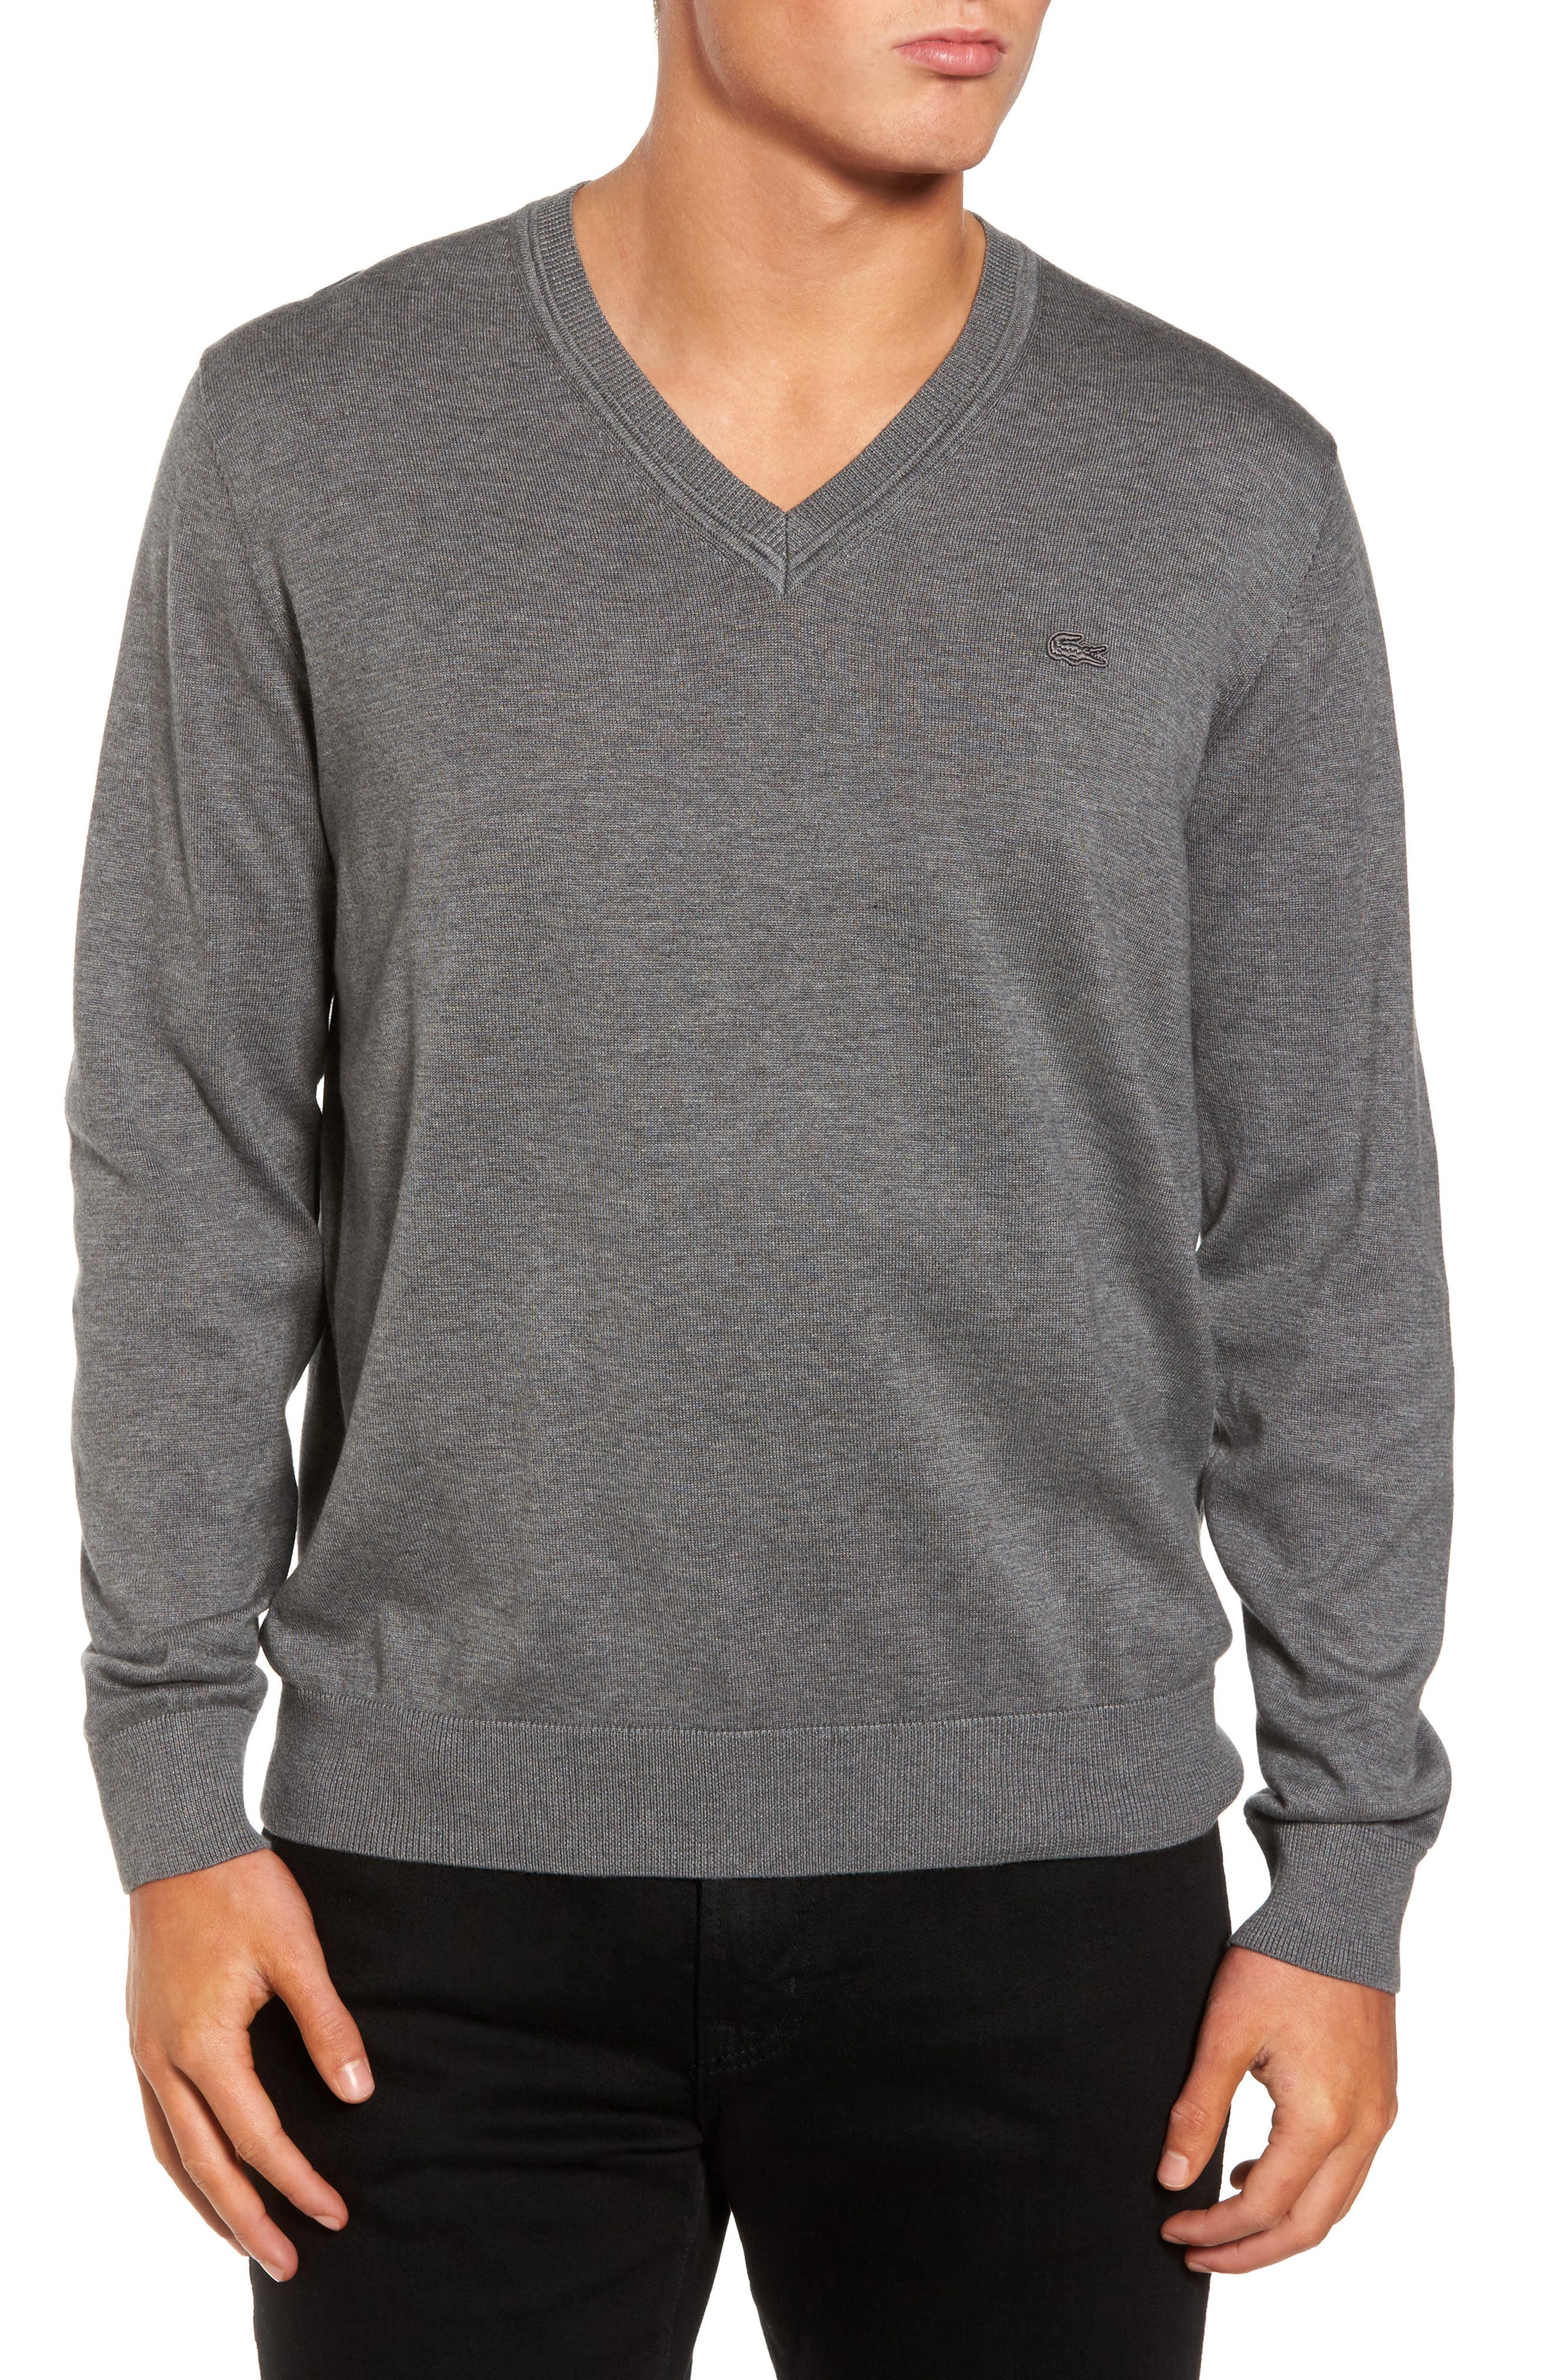 Main Image - Lacoste Cotton Jersey V-Neck Sweater